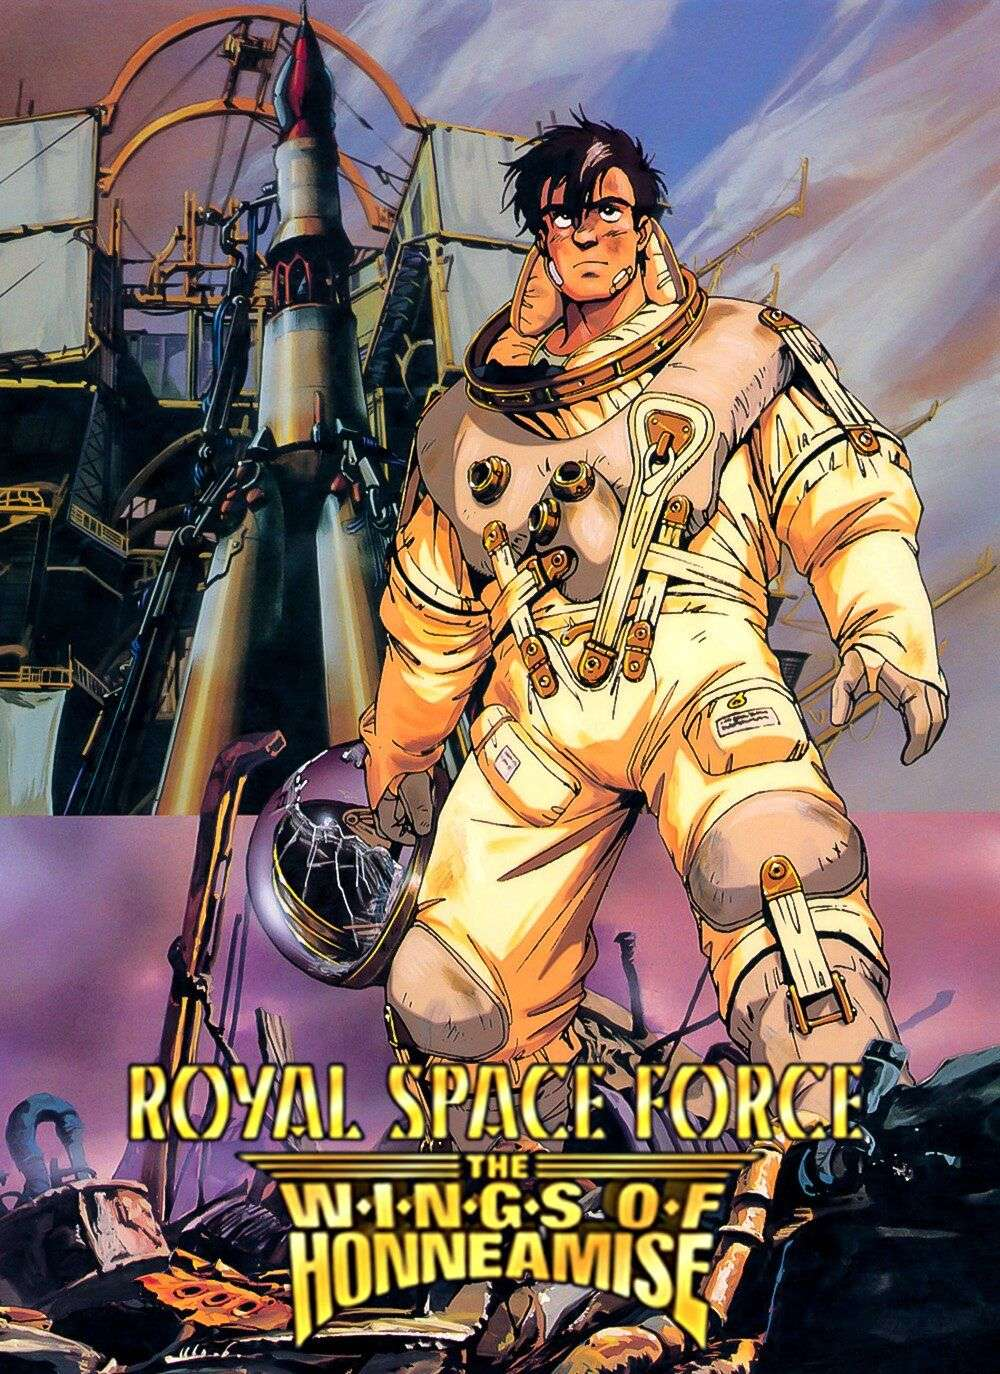 Royal Space Force The Wings of Honneamise (1987)